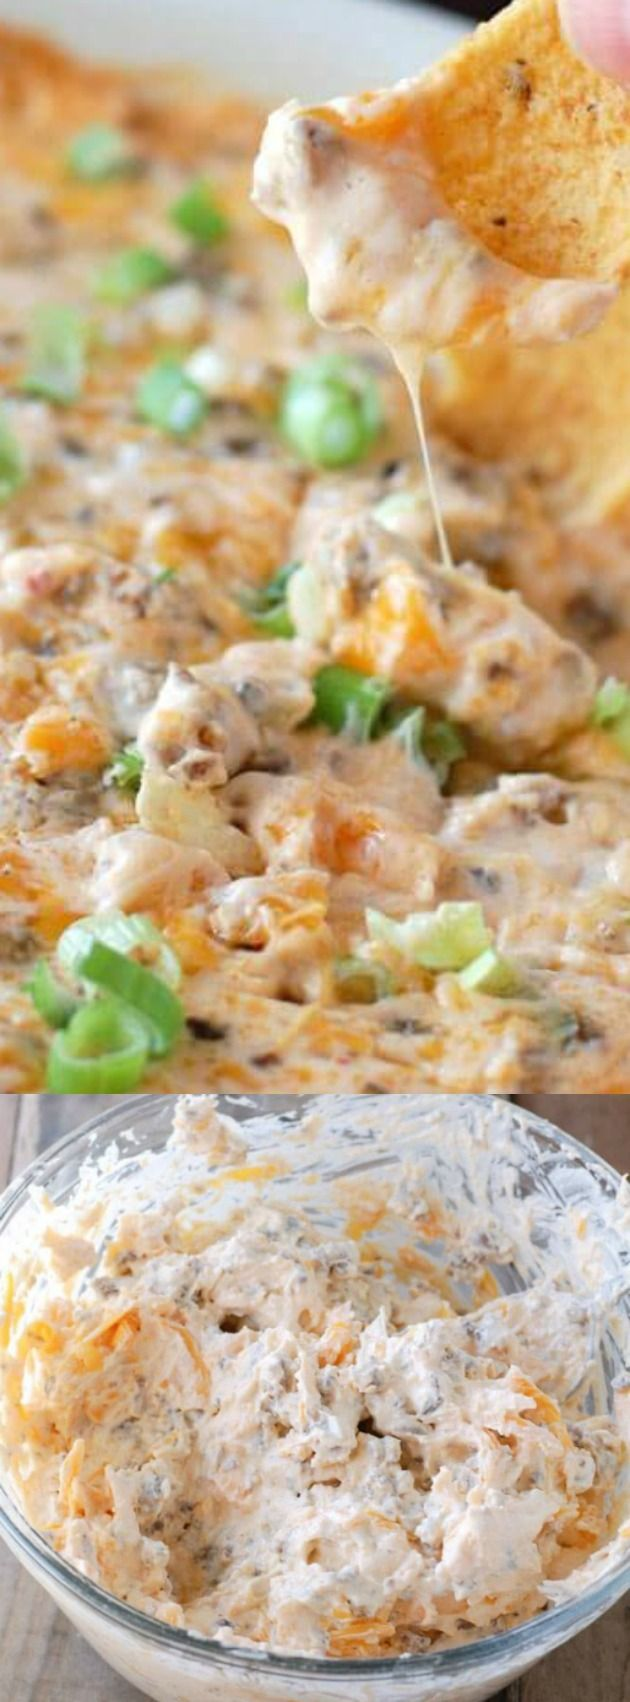 This Hot Sausage Beer Cheese Dip from Food Lovin' Family is the BEST appetizer EVER! It is filled with creamy, cheesy, sausage-y goodness that you are going to go crazy for.